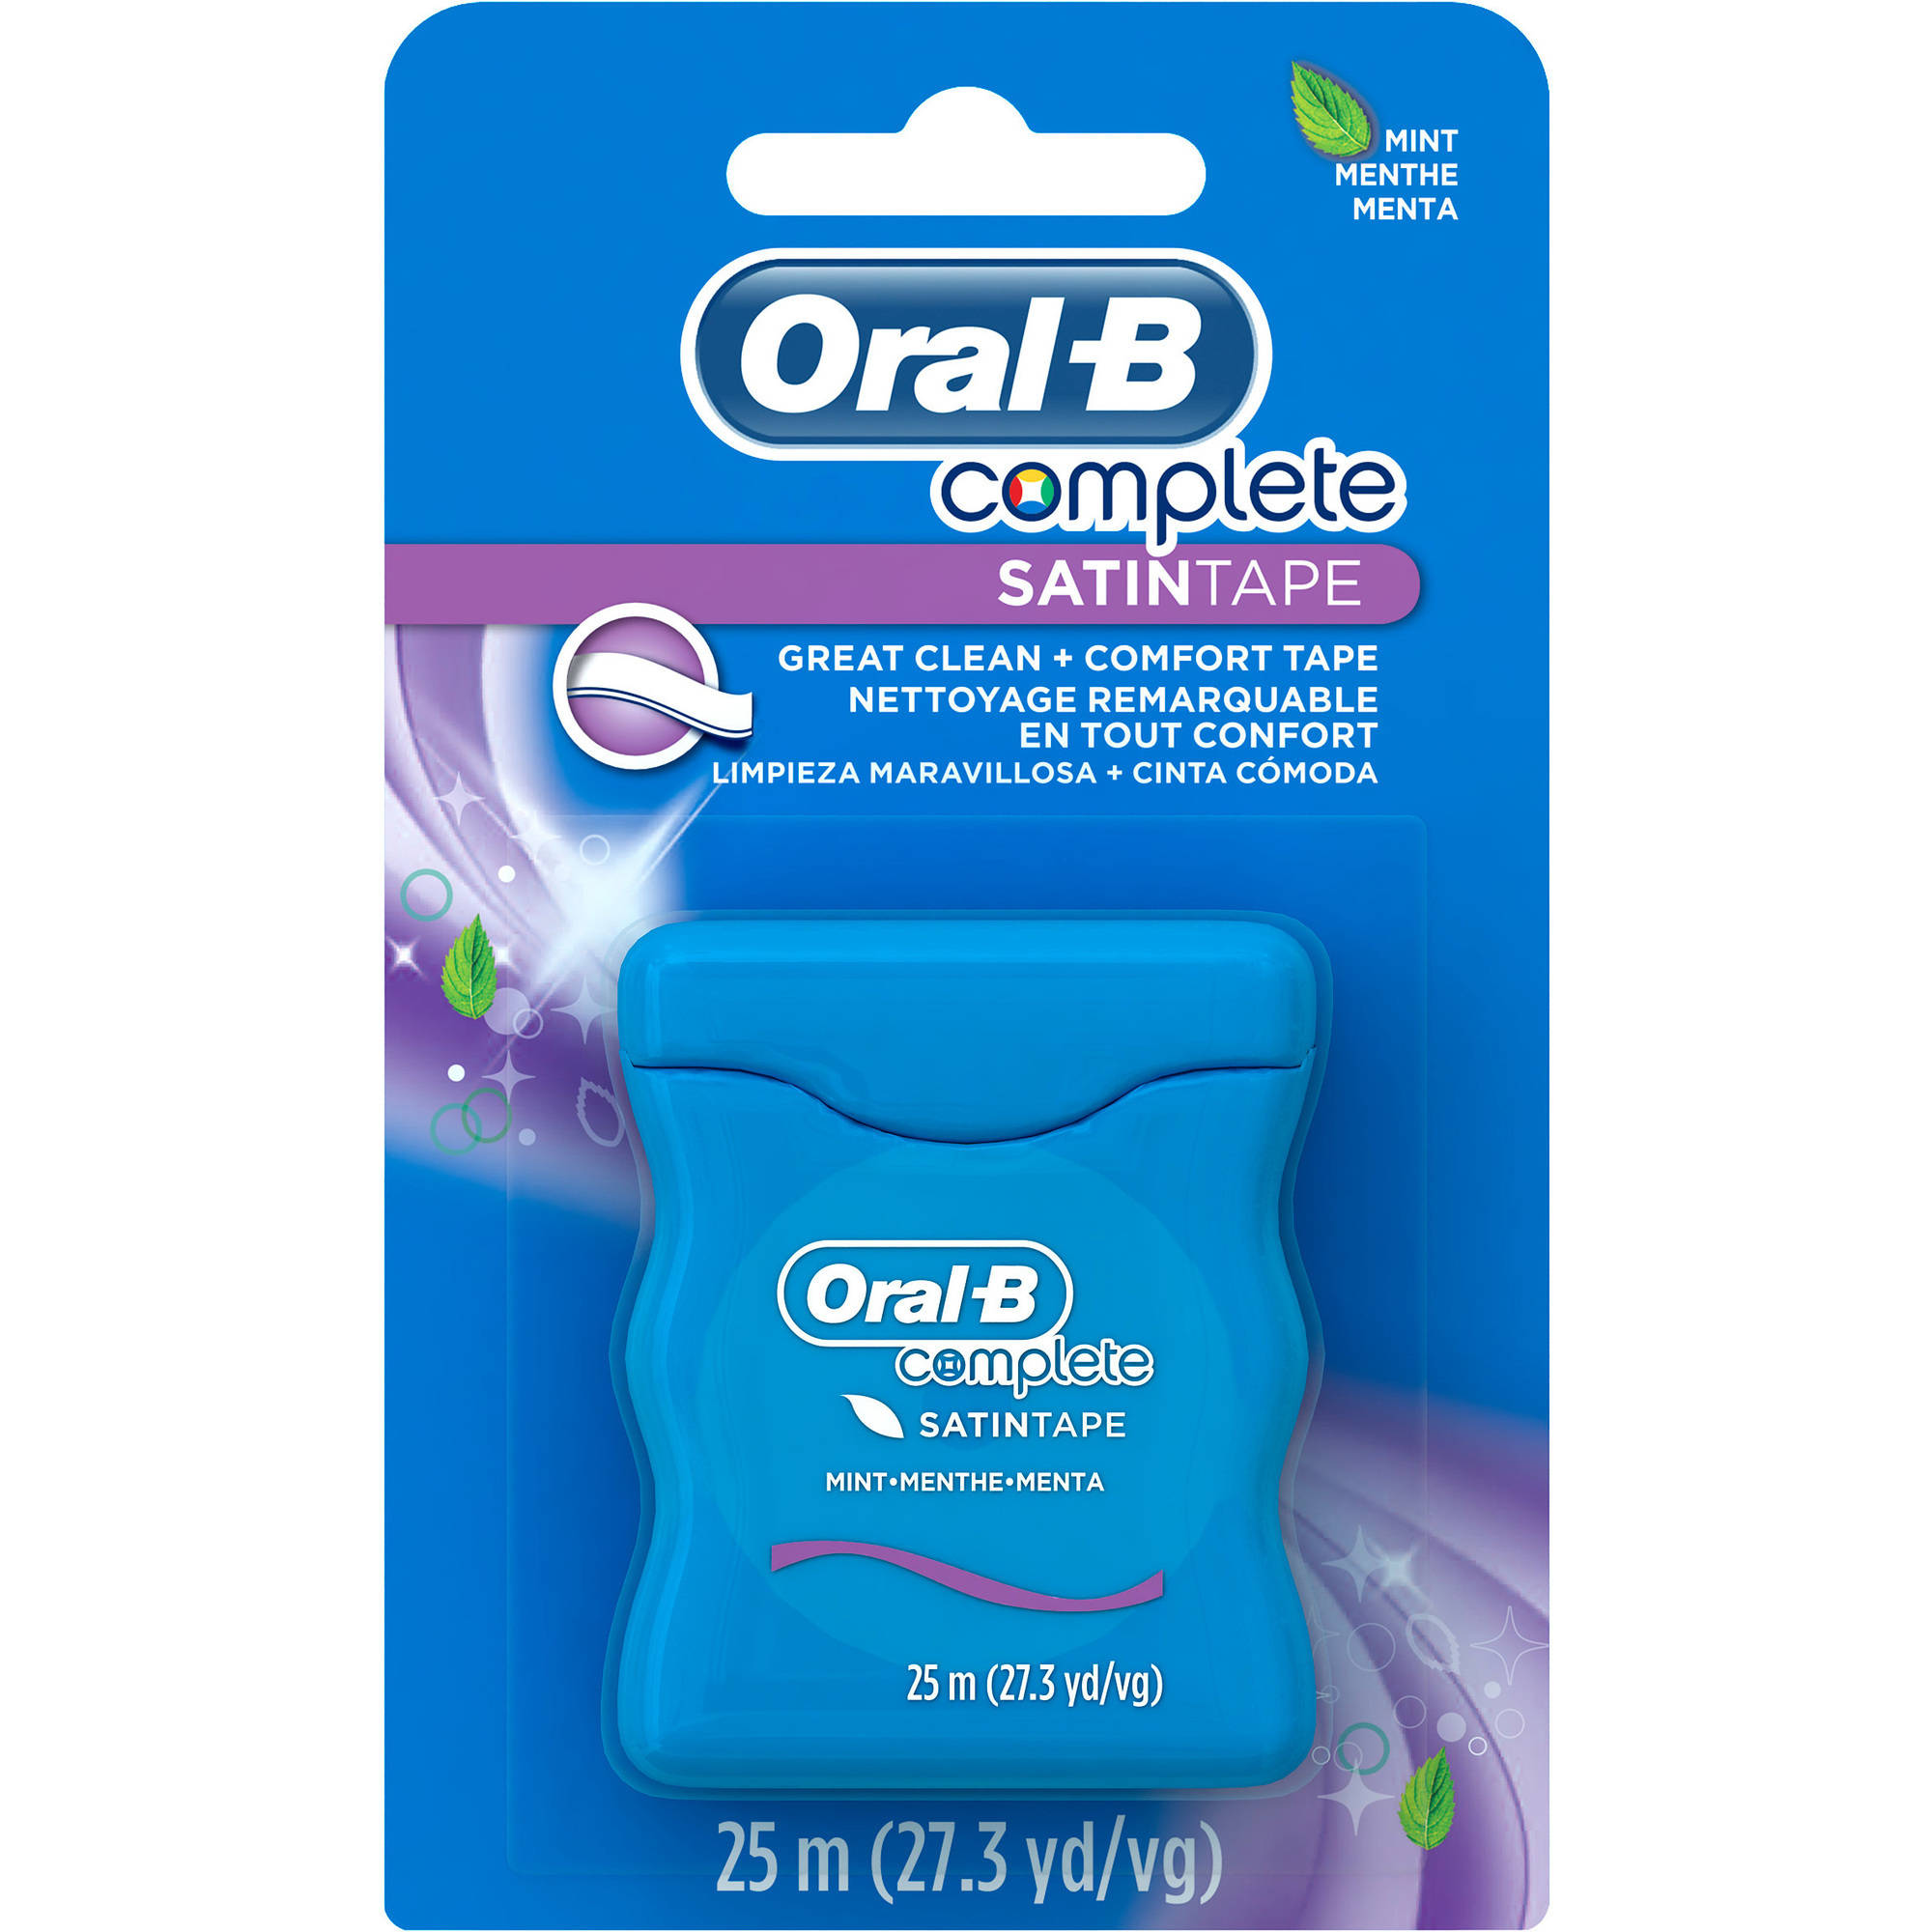 Oral B Satin Tape - 1 Ct